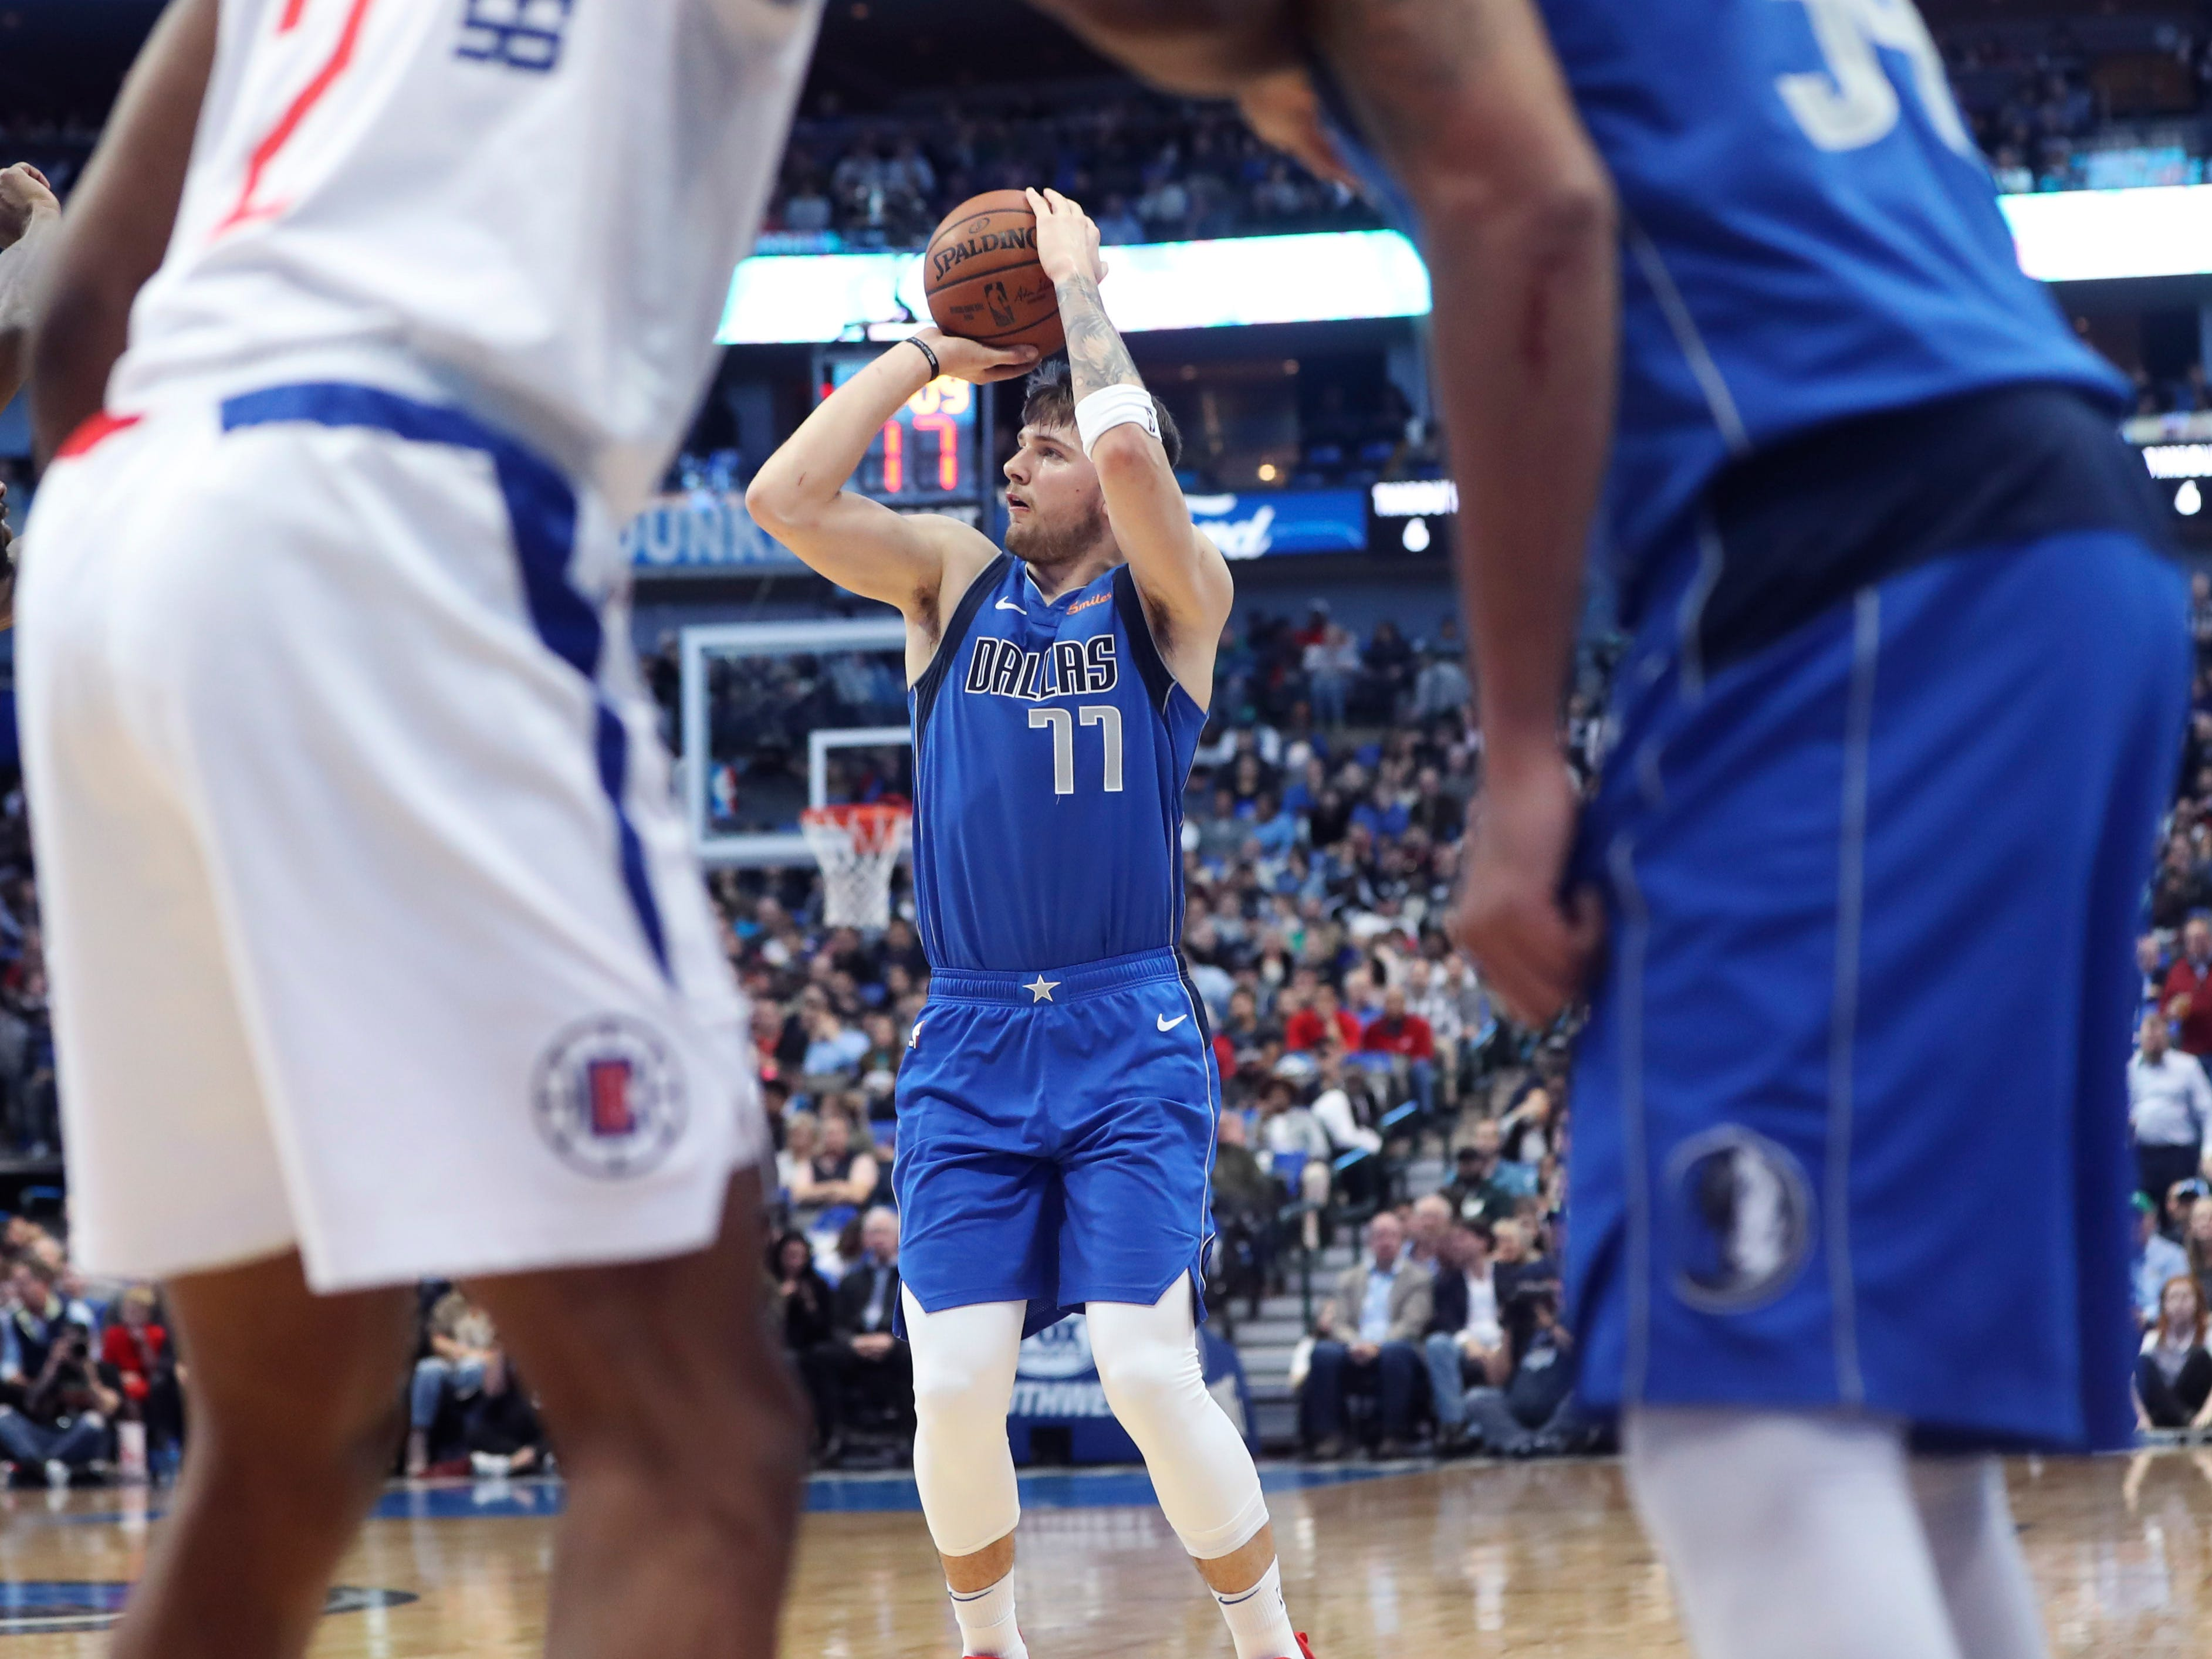 Jan. 22: Mavericks forward Luka Doncic puts up a shot during the first half against the Clippers in Dallas.